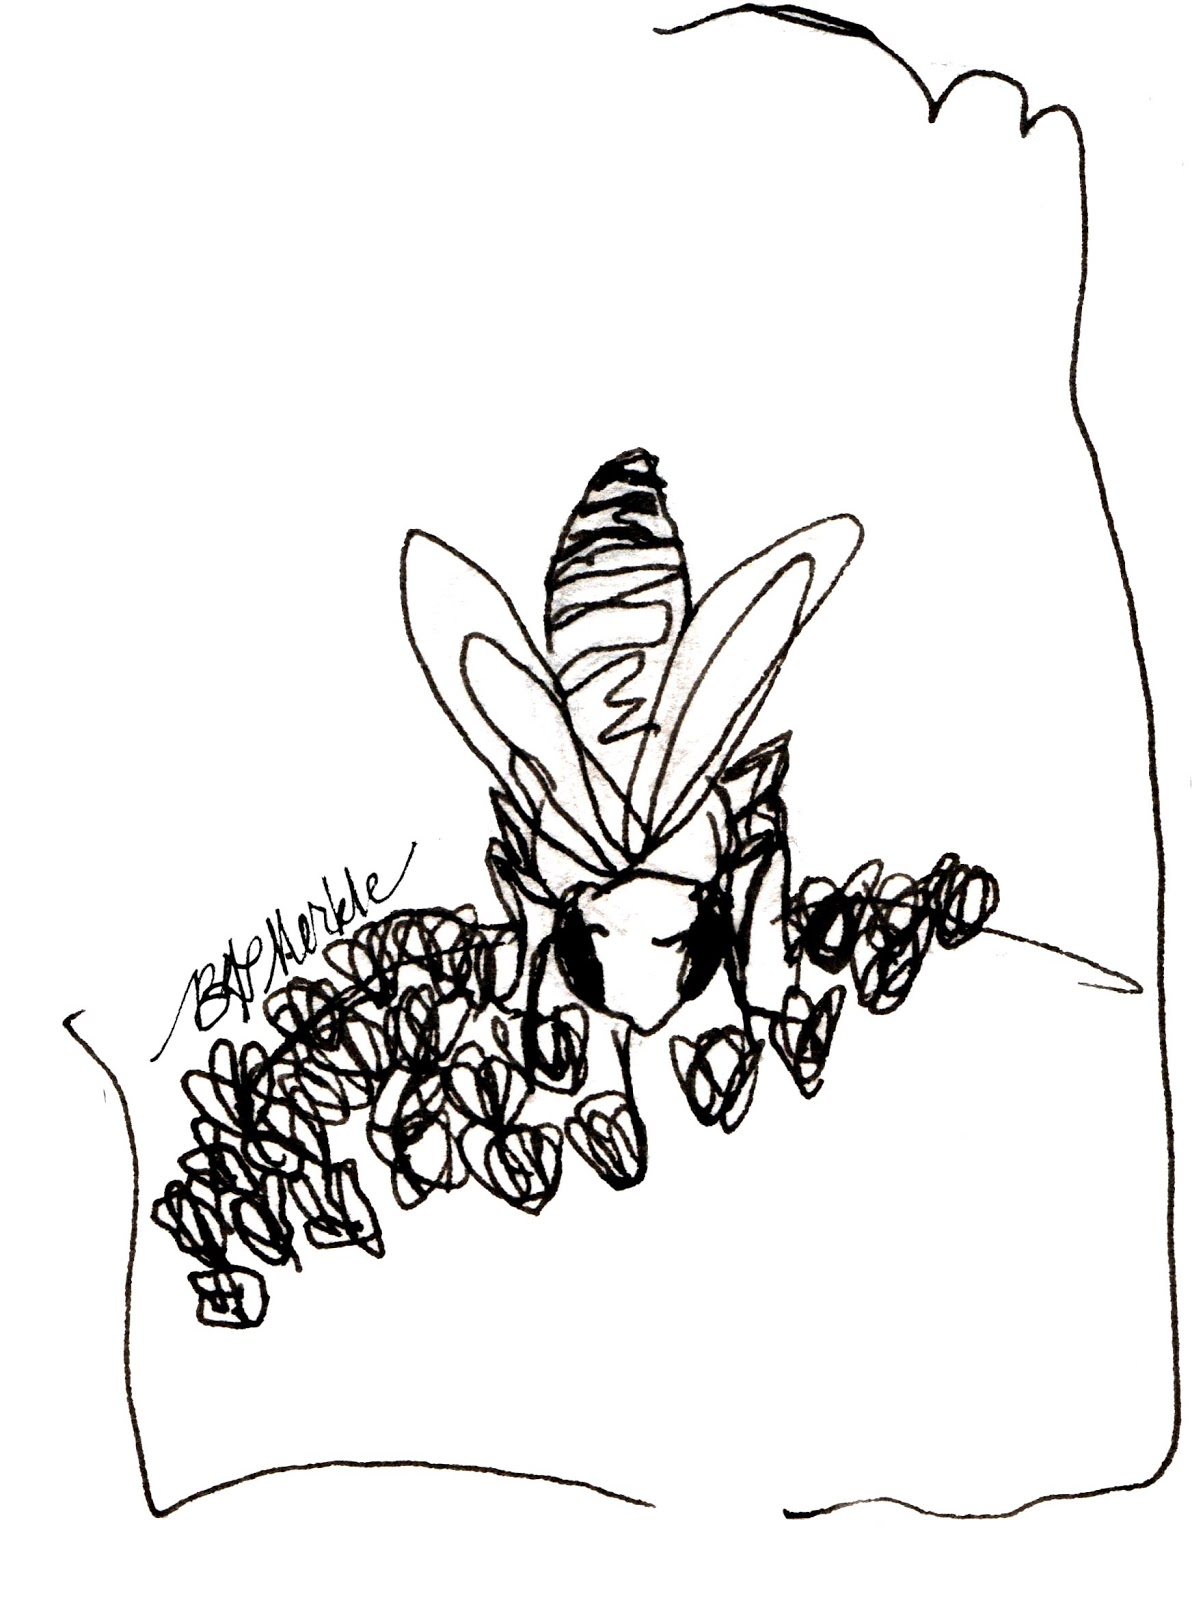 drawn to qu bec sketchbook snapshot buzz about bees and bee Lots of Pets human related pollination aside bees of all stripes pollinate a staggering proportion of the wild and domestic plants